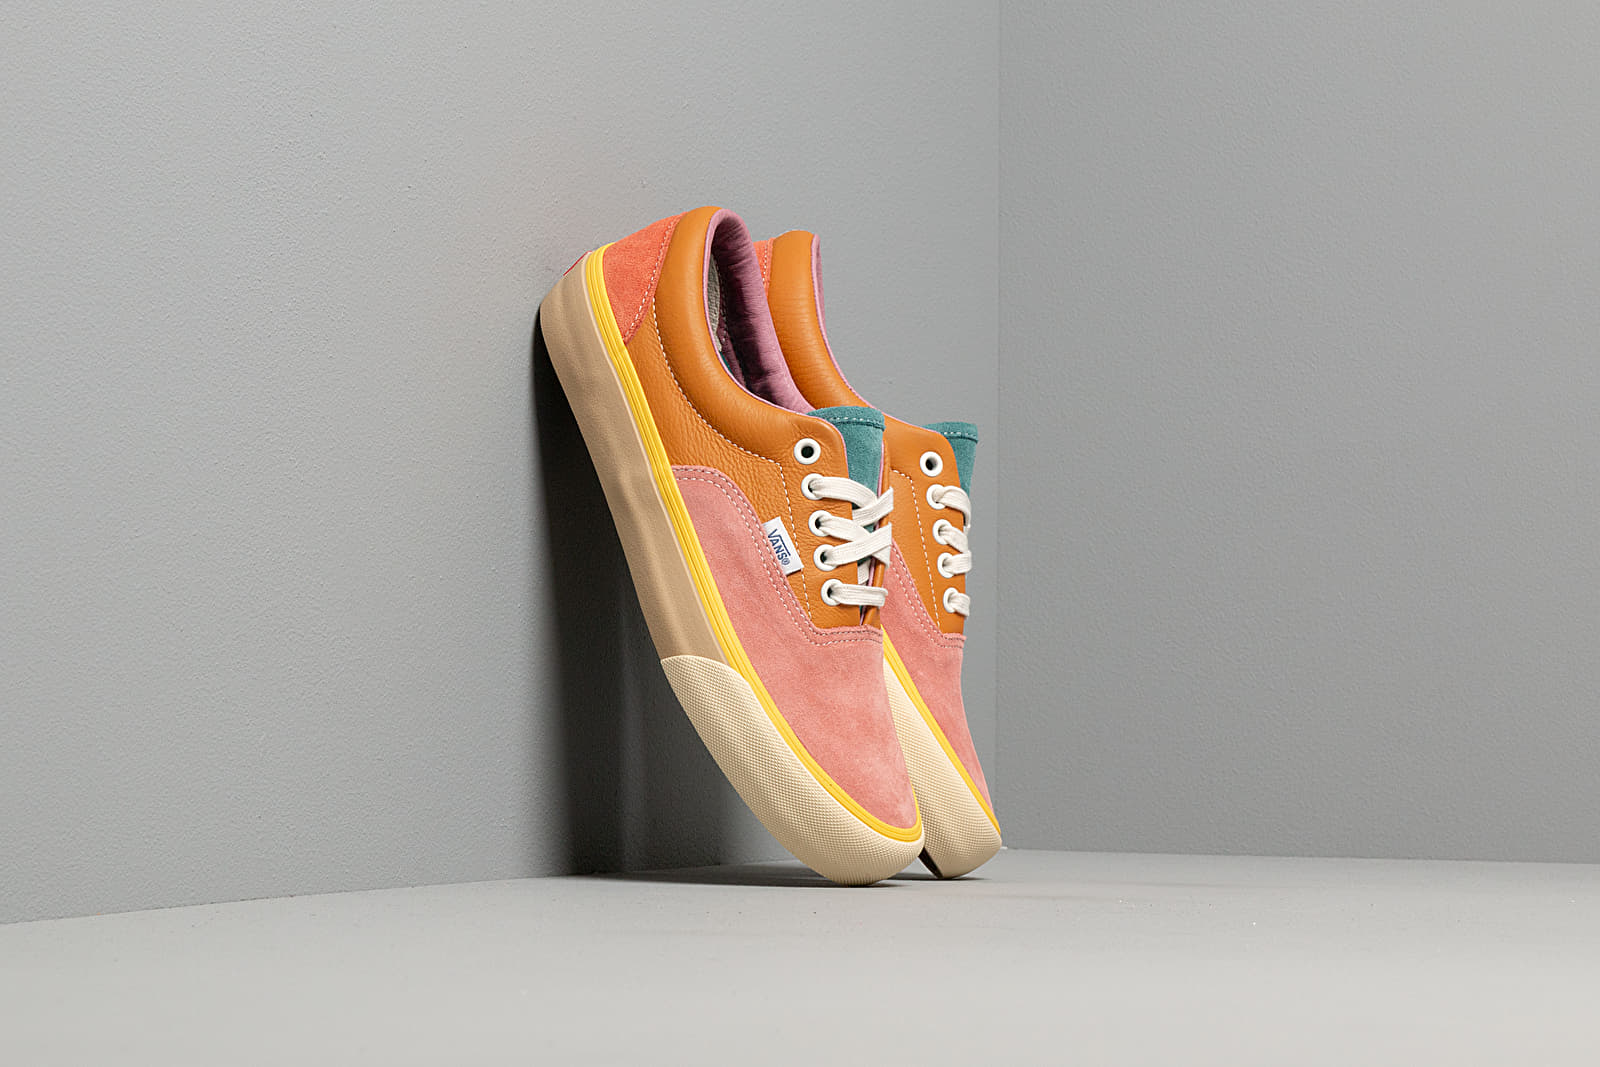 Vans Era VLT LX (SUEDE/ LEATHER)